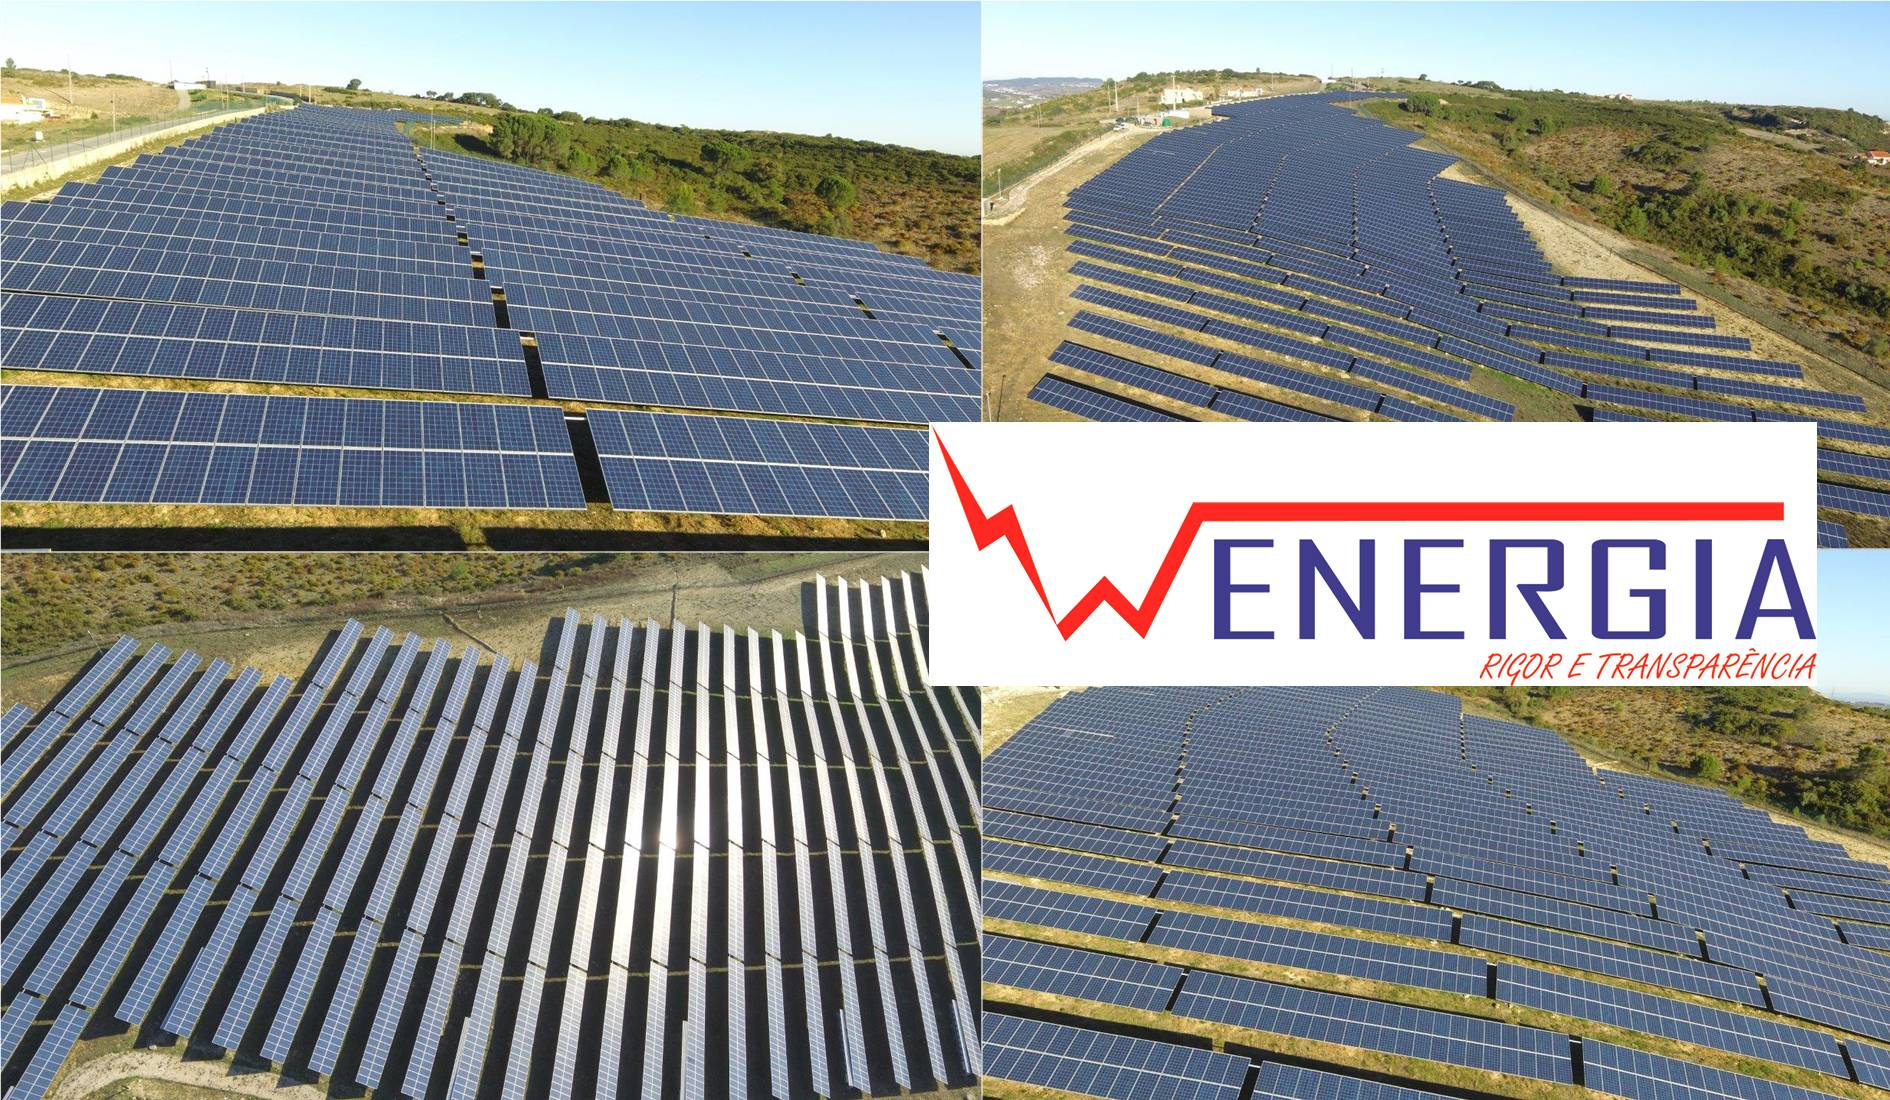 WENERGIA_CENTRAL FV 2MW 2018